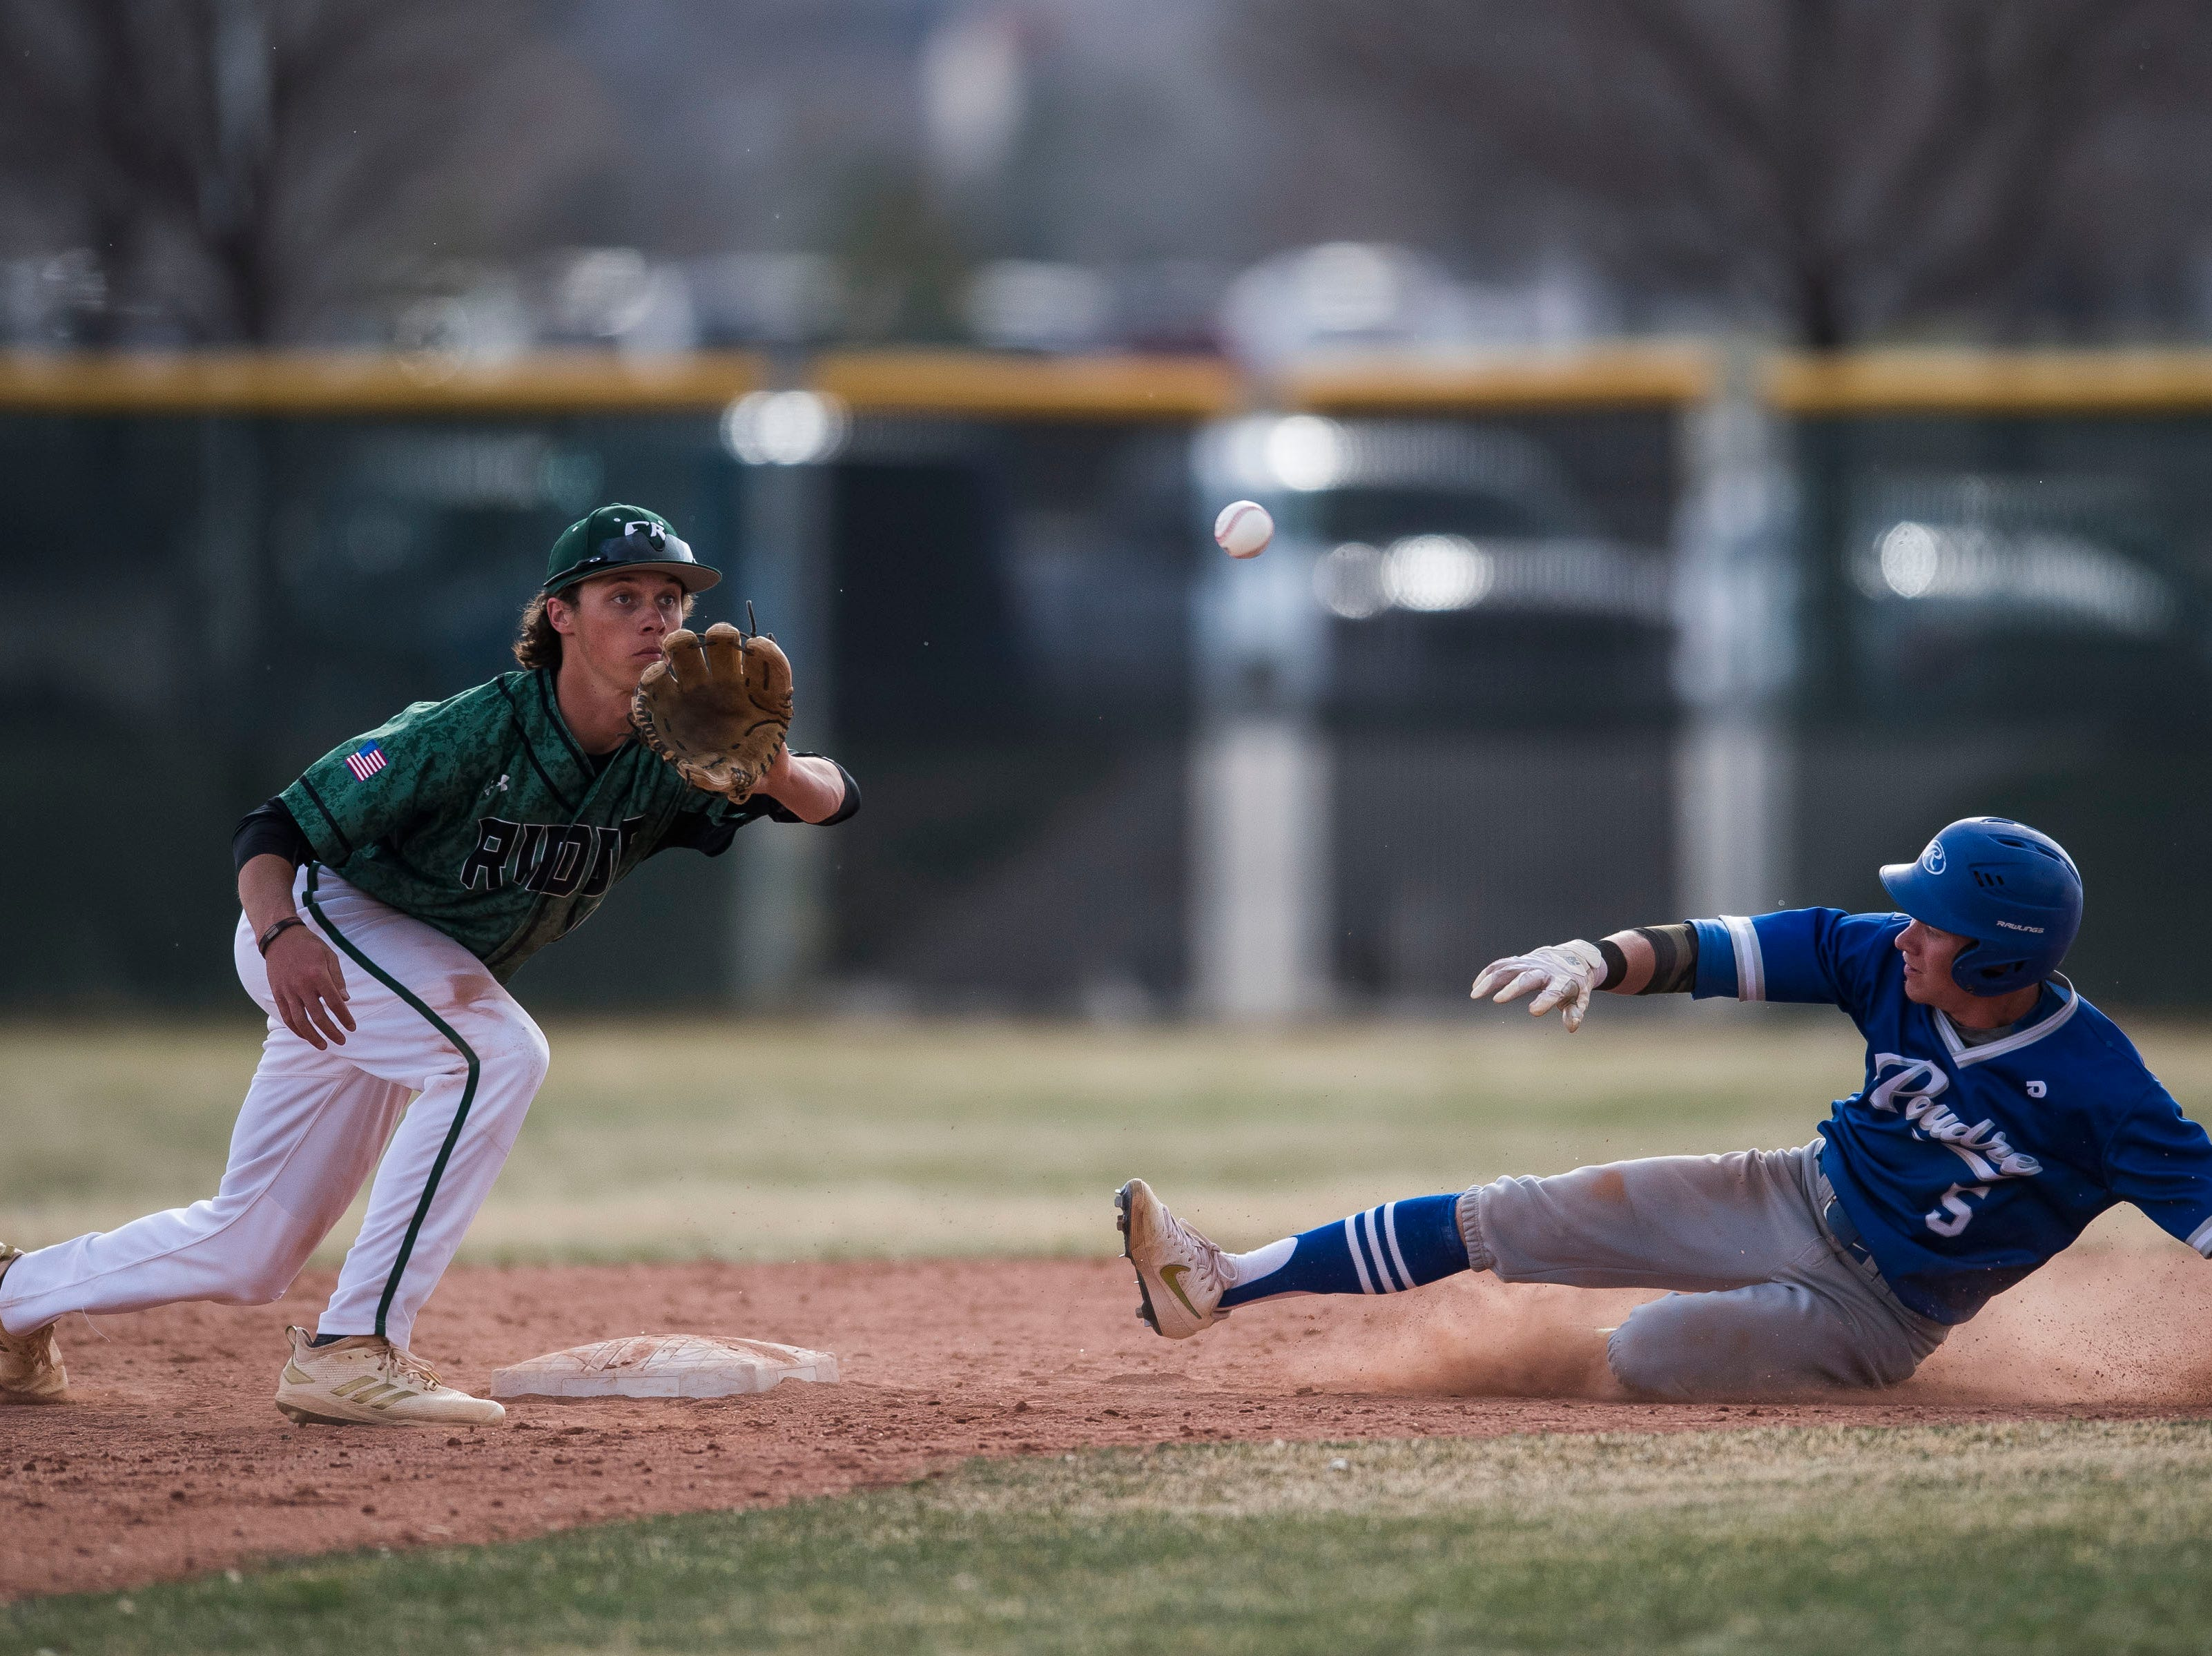 Poudre High School senior Garrett Spaeth (5) slides into second before Fossil Ridge High School second baseman Jack Cosper (13) can tag him out on stolen base on Wednesday, April 3, 2019, at Fossil Ridge High School in Fort Collins, Colo.